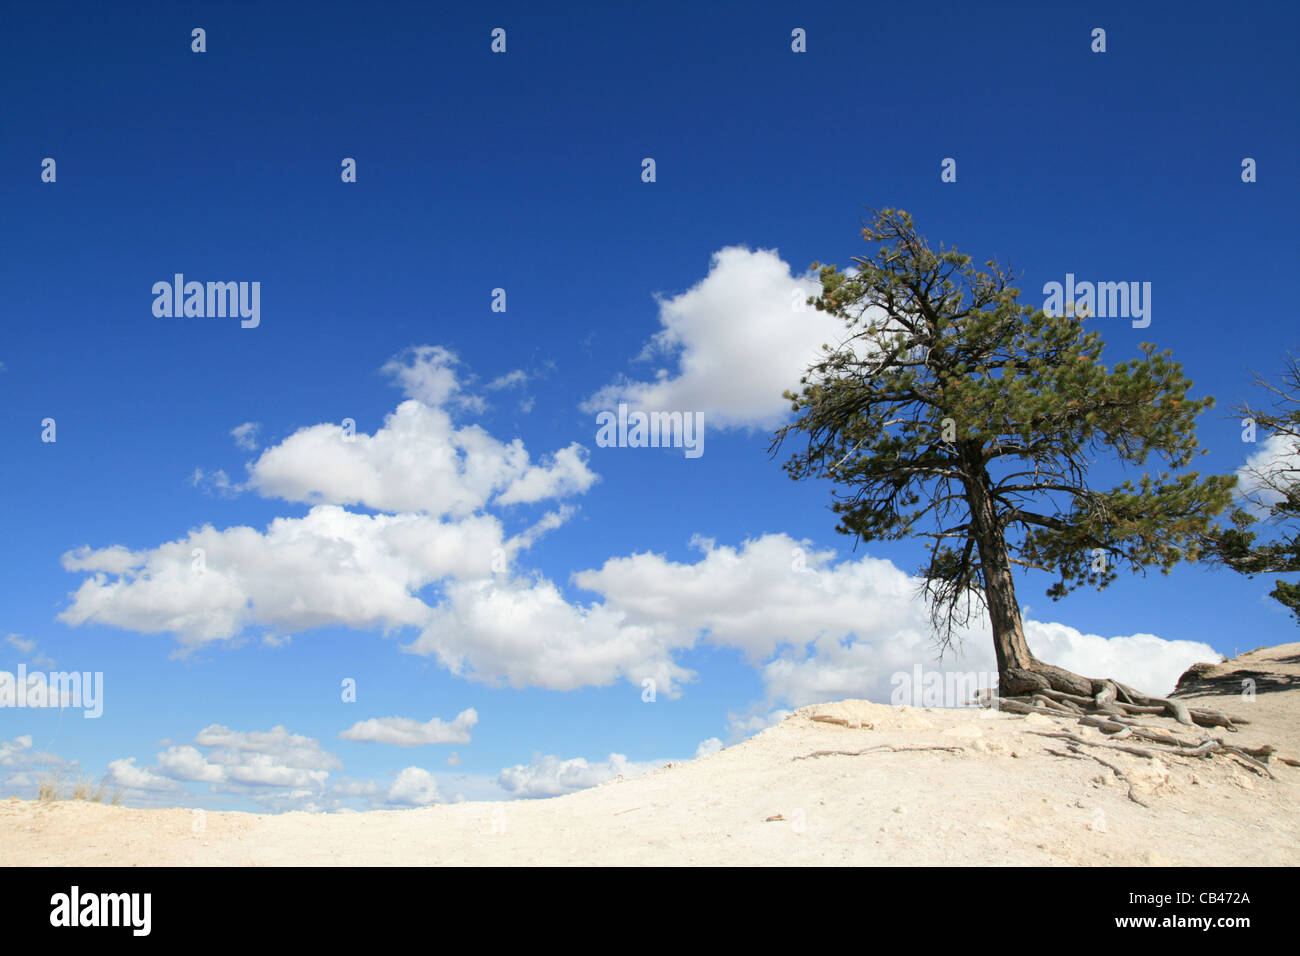 pine tree on the edge of the world with blue sky and clouds in the background - Stock Image